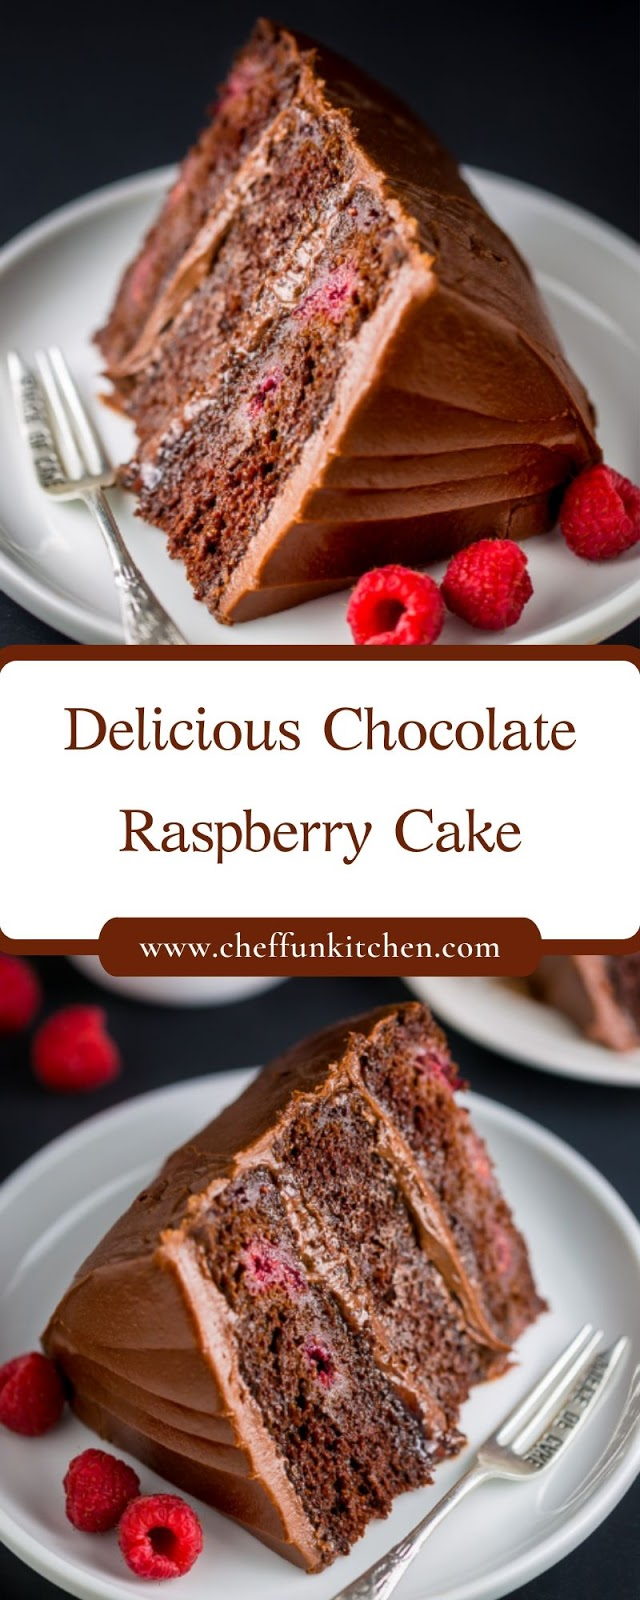 Delicious Chocolate Raspberry Cake